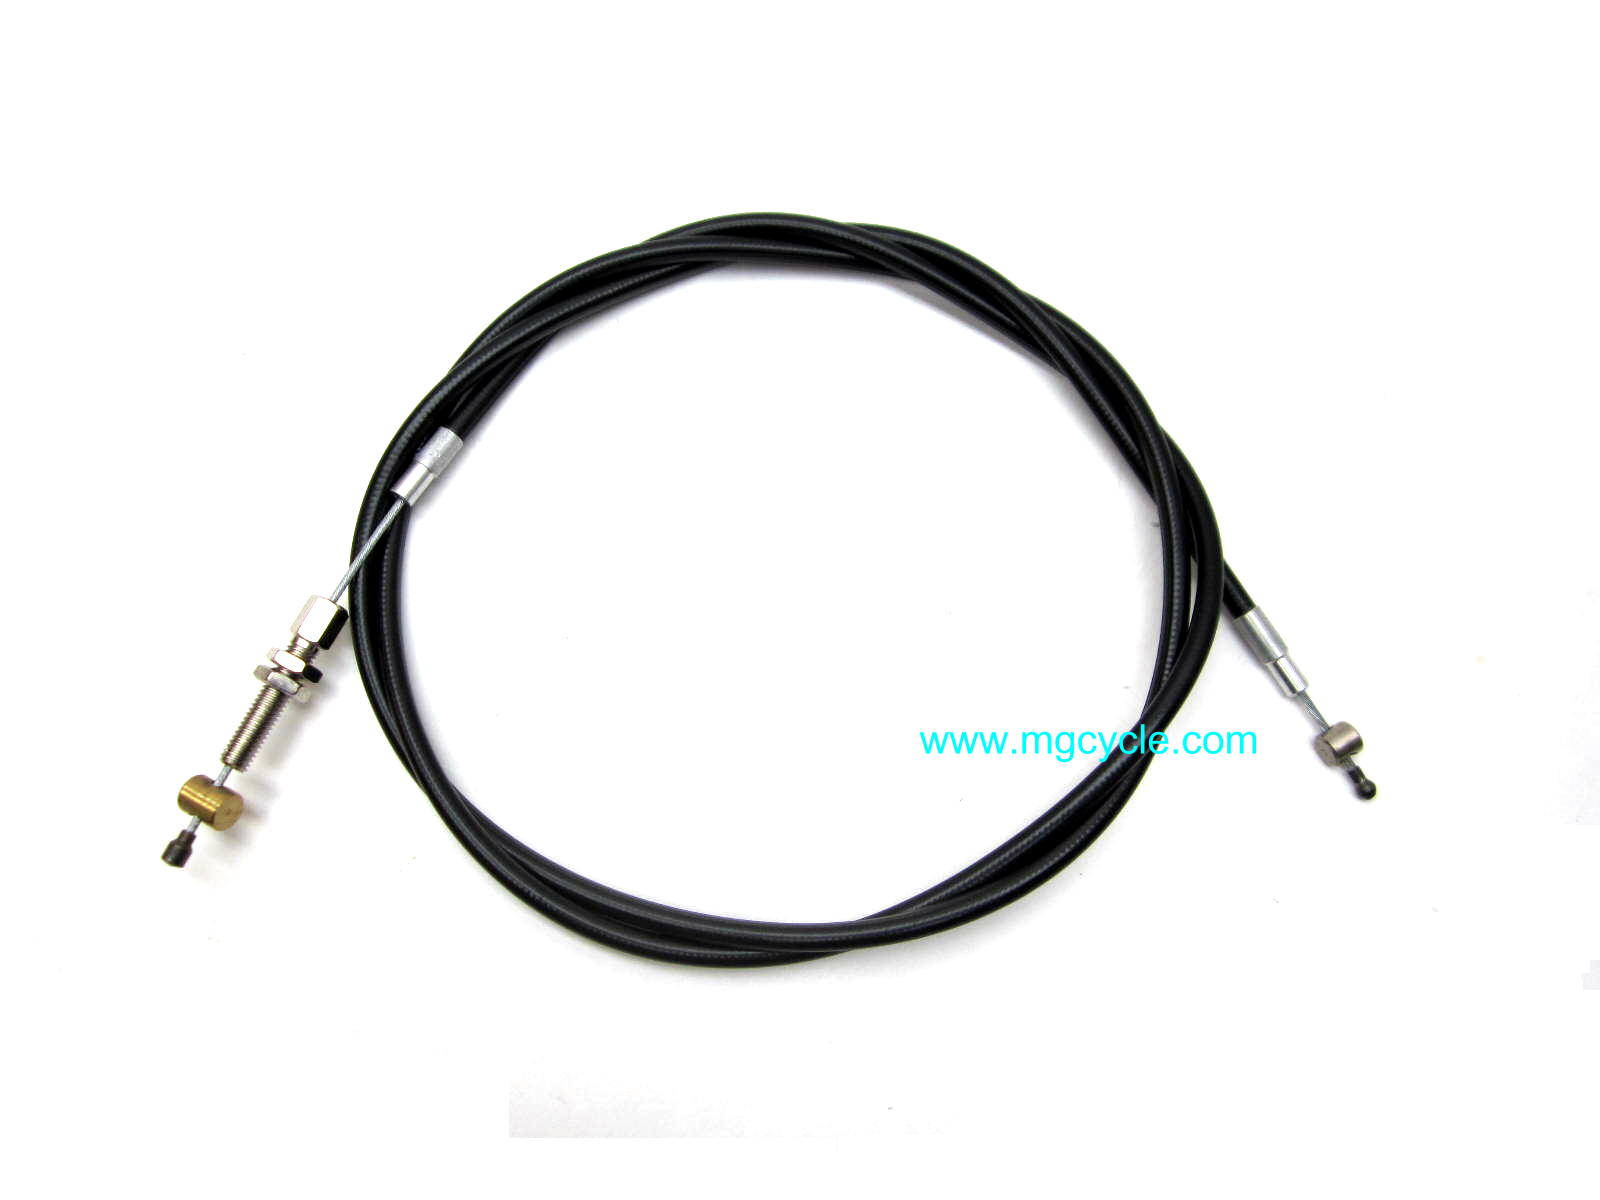 Clutch cable, Eldorado civilian